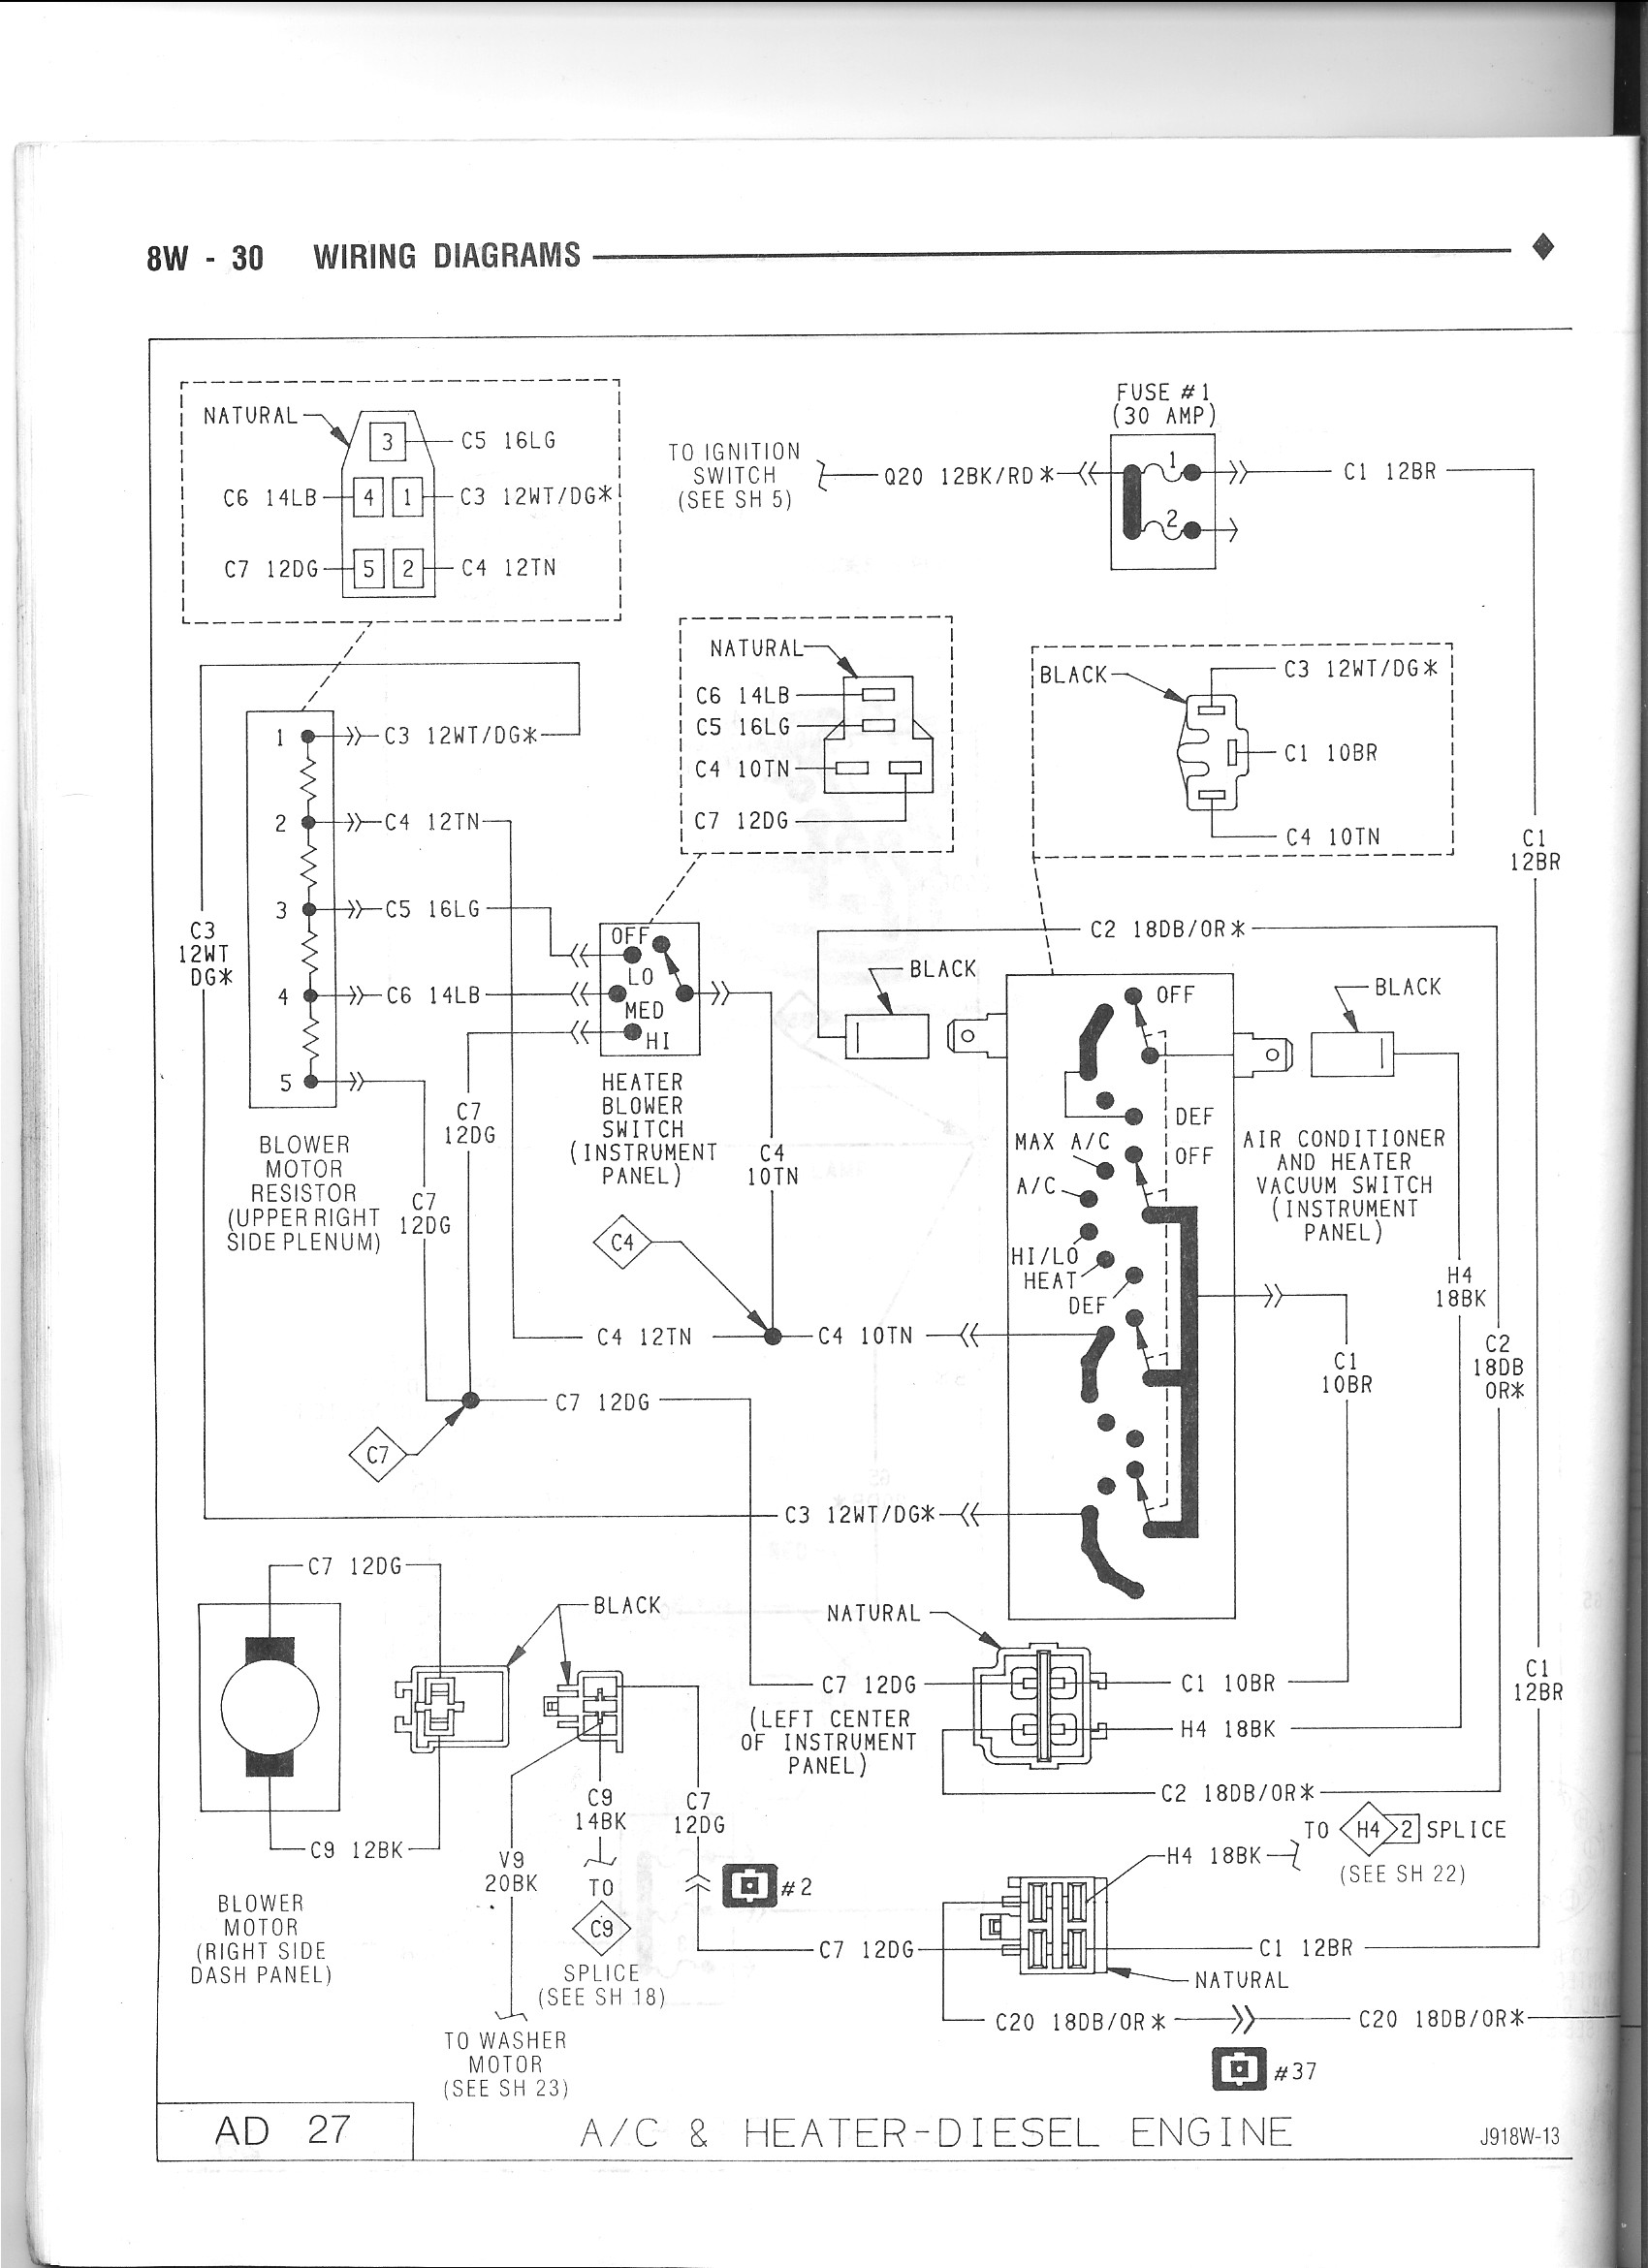 1989 Dodge Dakota Headlight Wiring Diagram Trusted Shadow 89 Ram 2500 Fuse Box 99